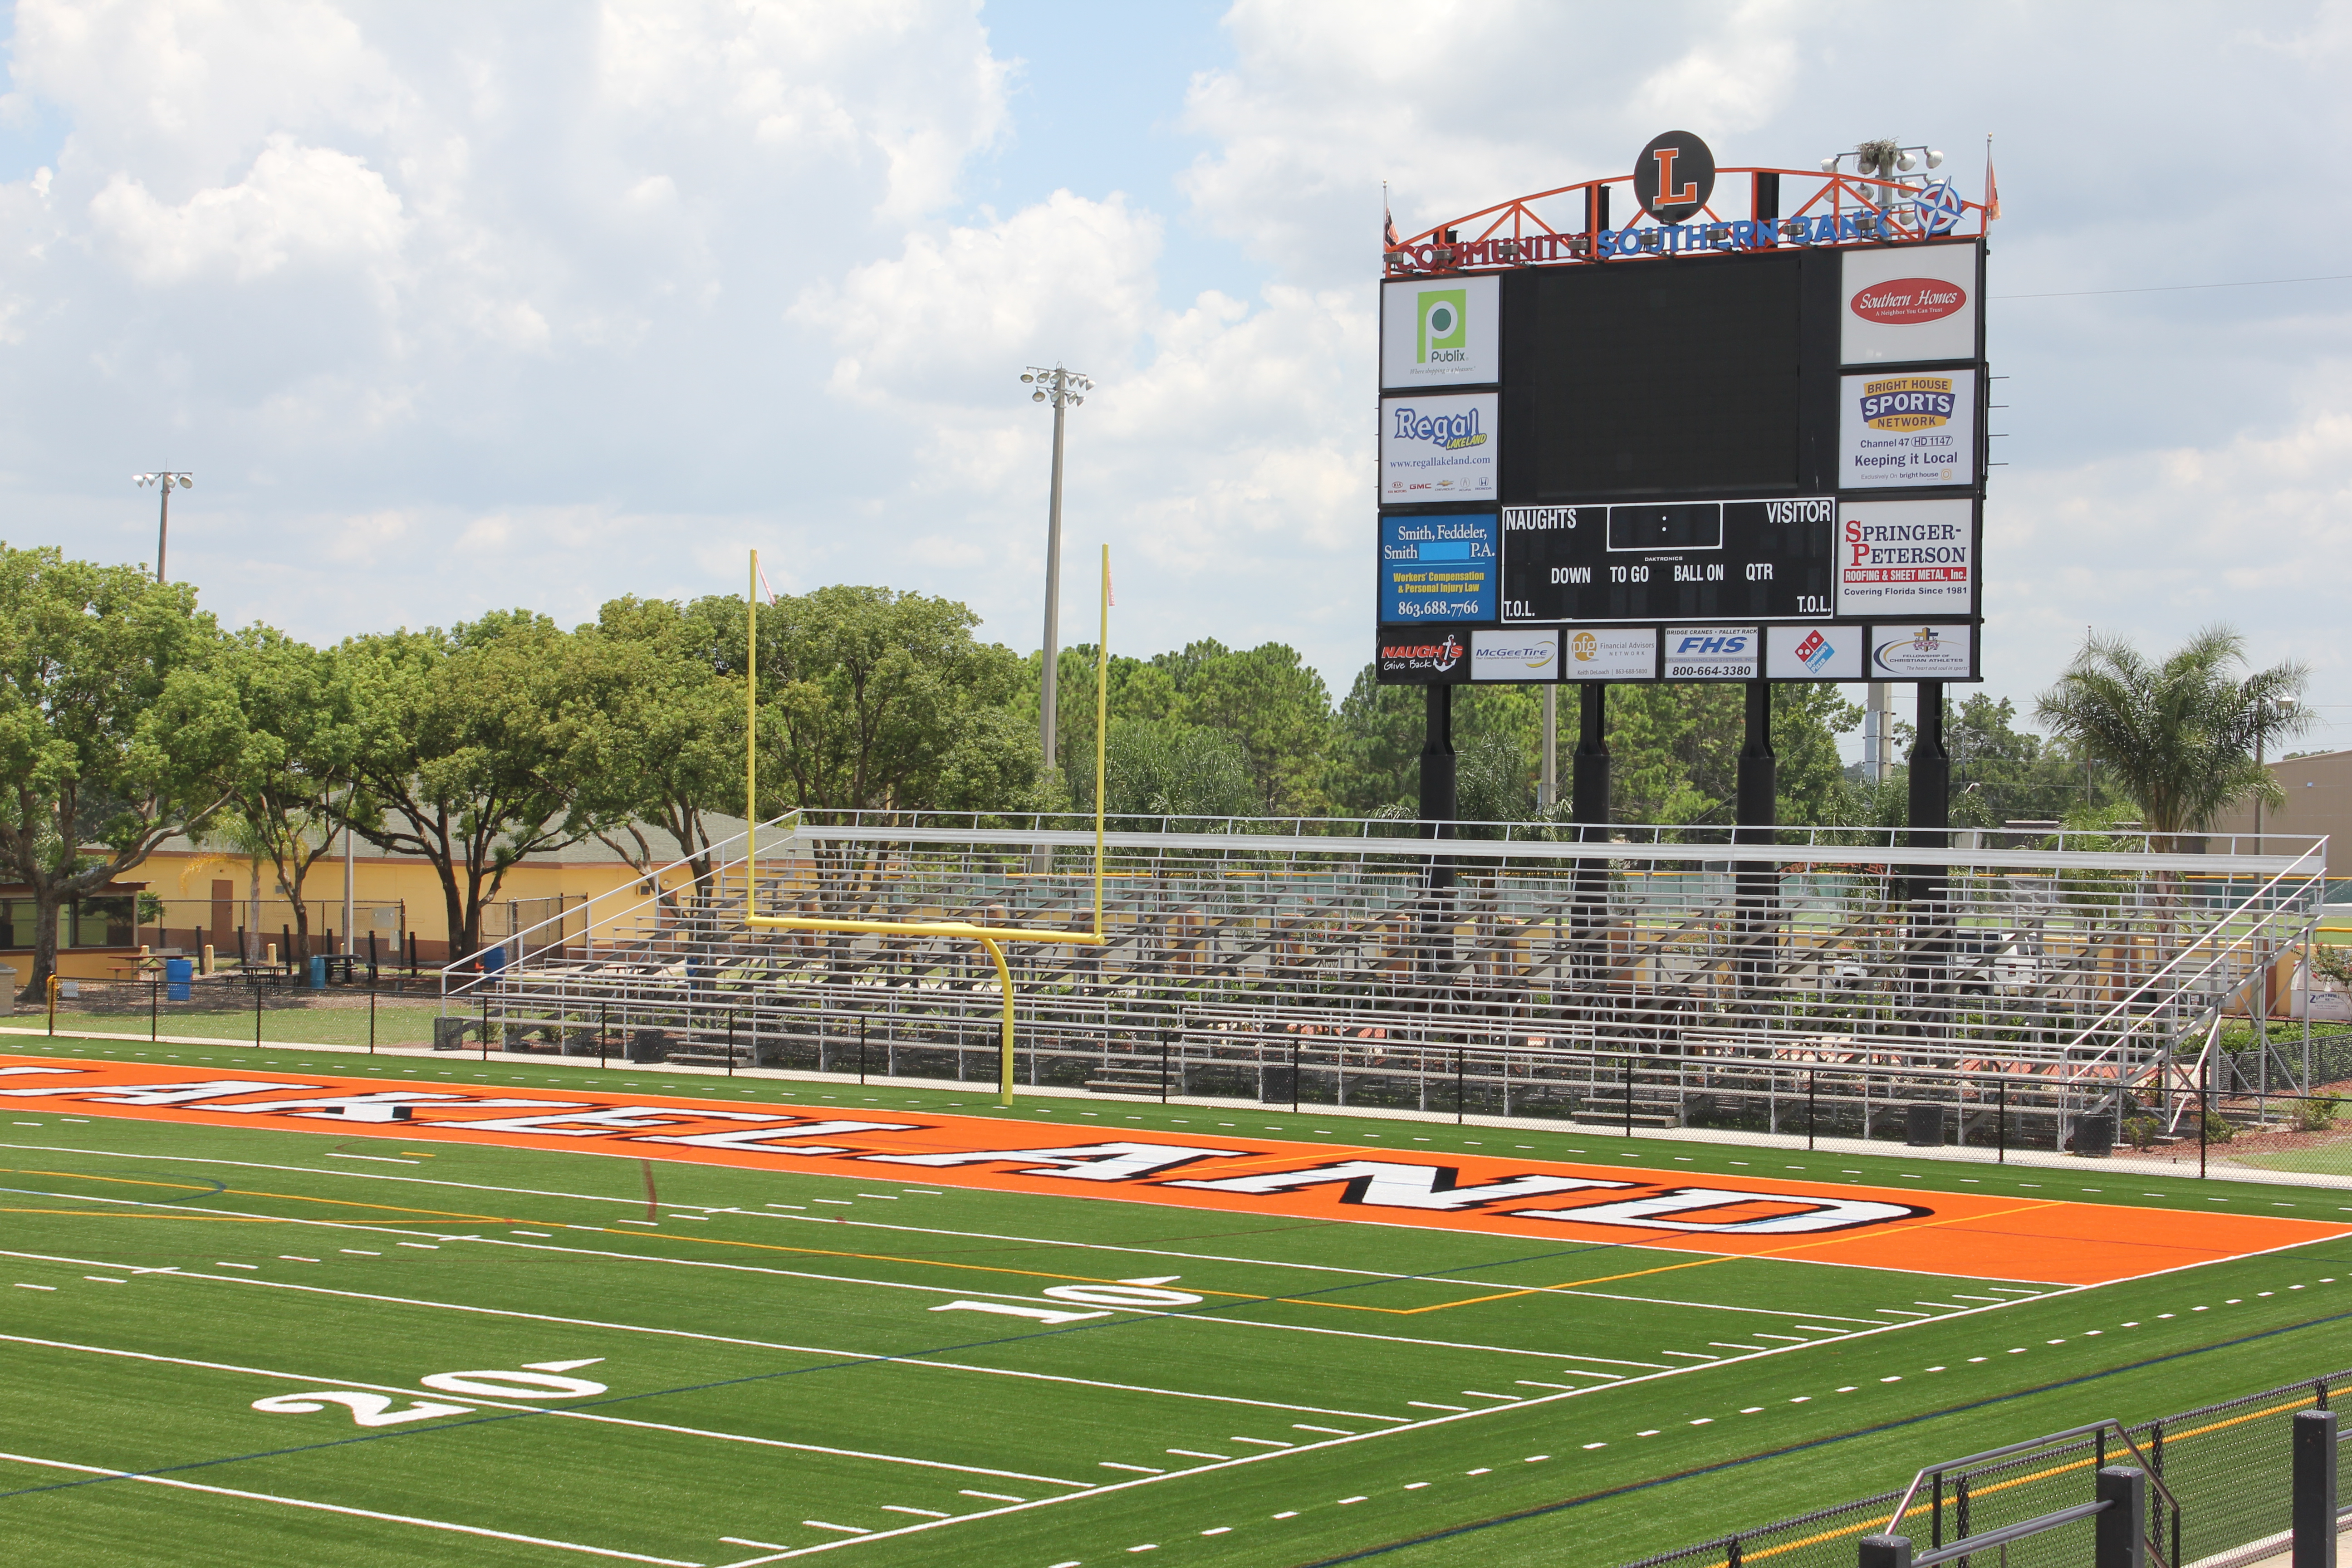 A view of the scoreboard at historic Bryant Stadium